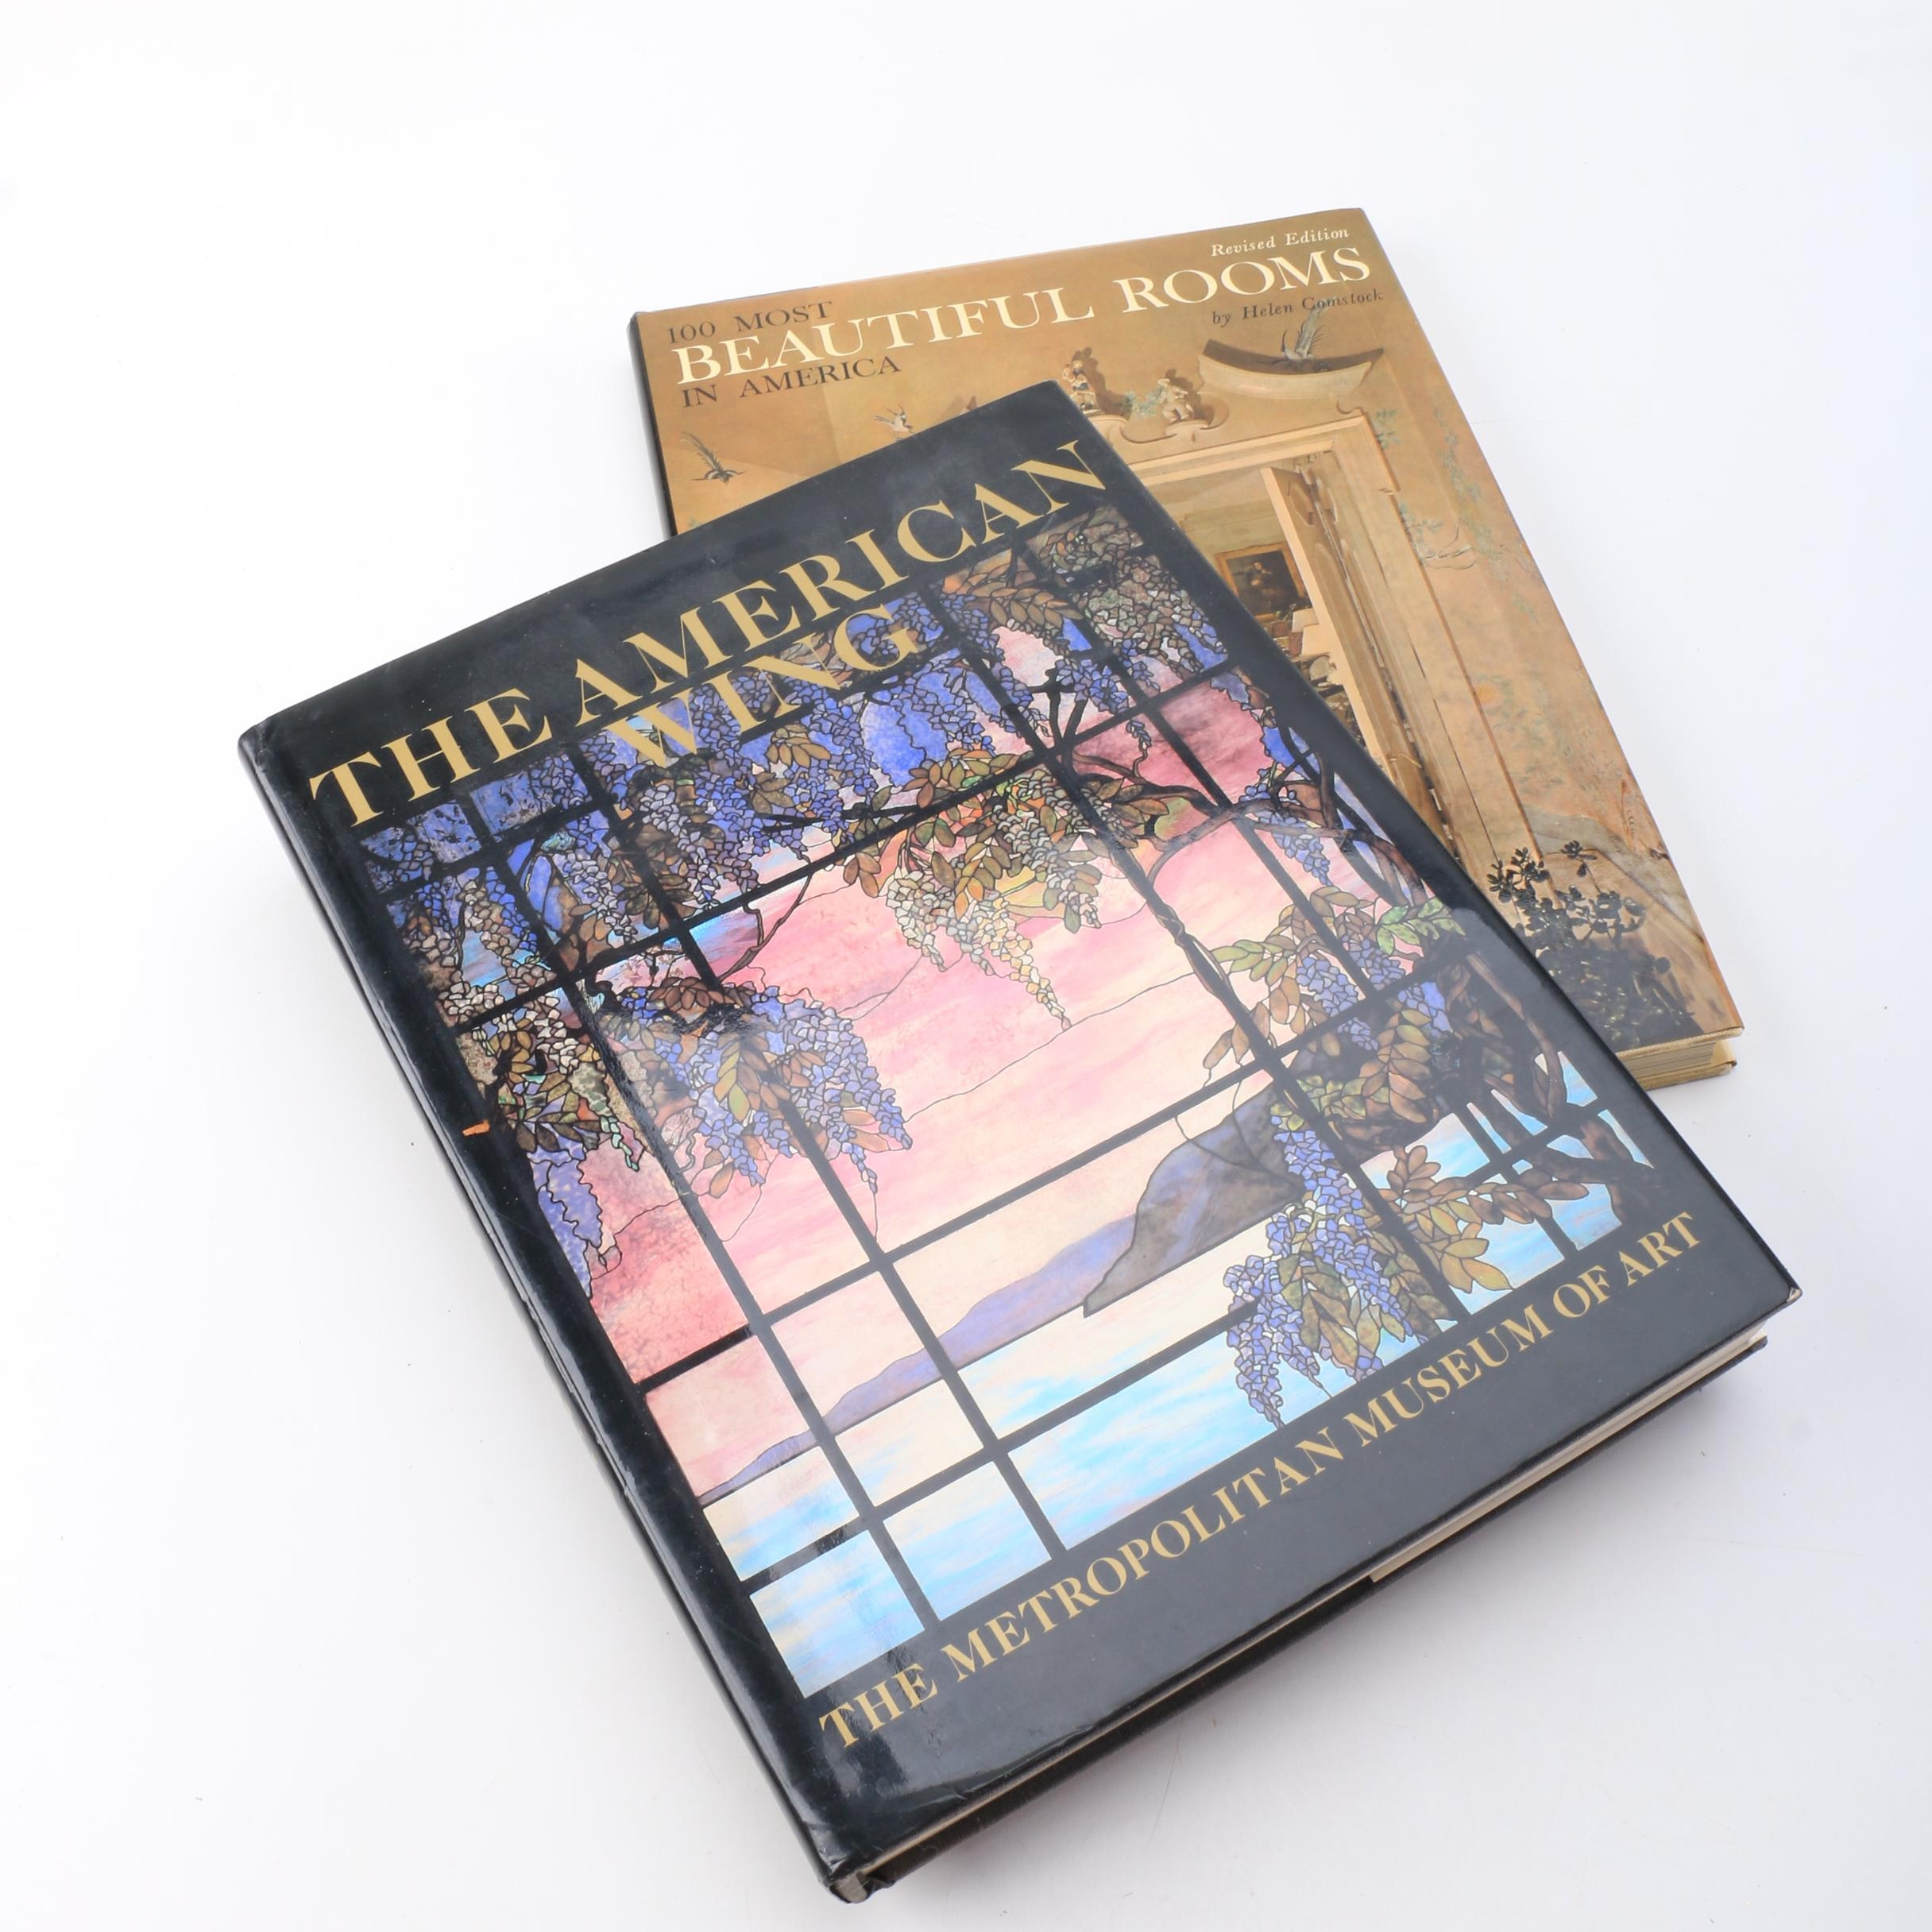 "1985 ""The American Wing"" and 1965 ""100 Most Beautiful Rooms in America"""